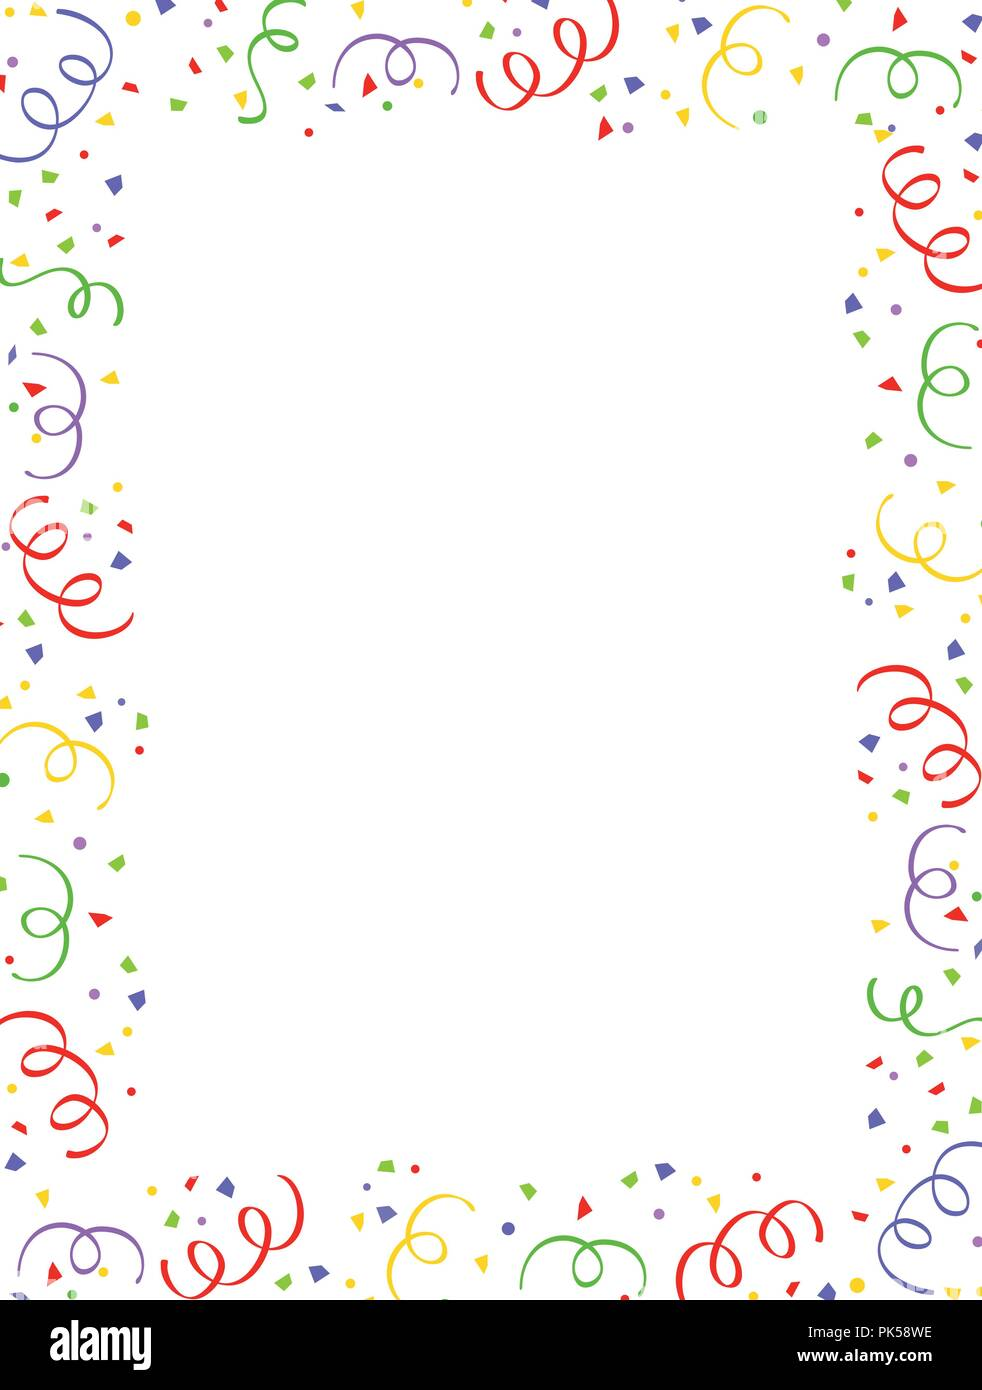 Colorful falling confetti party frame with empty space in